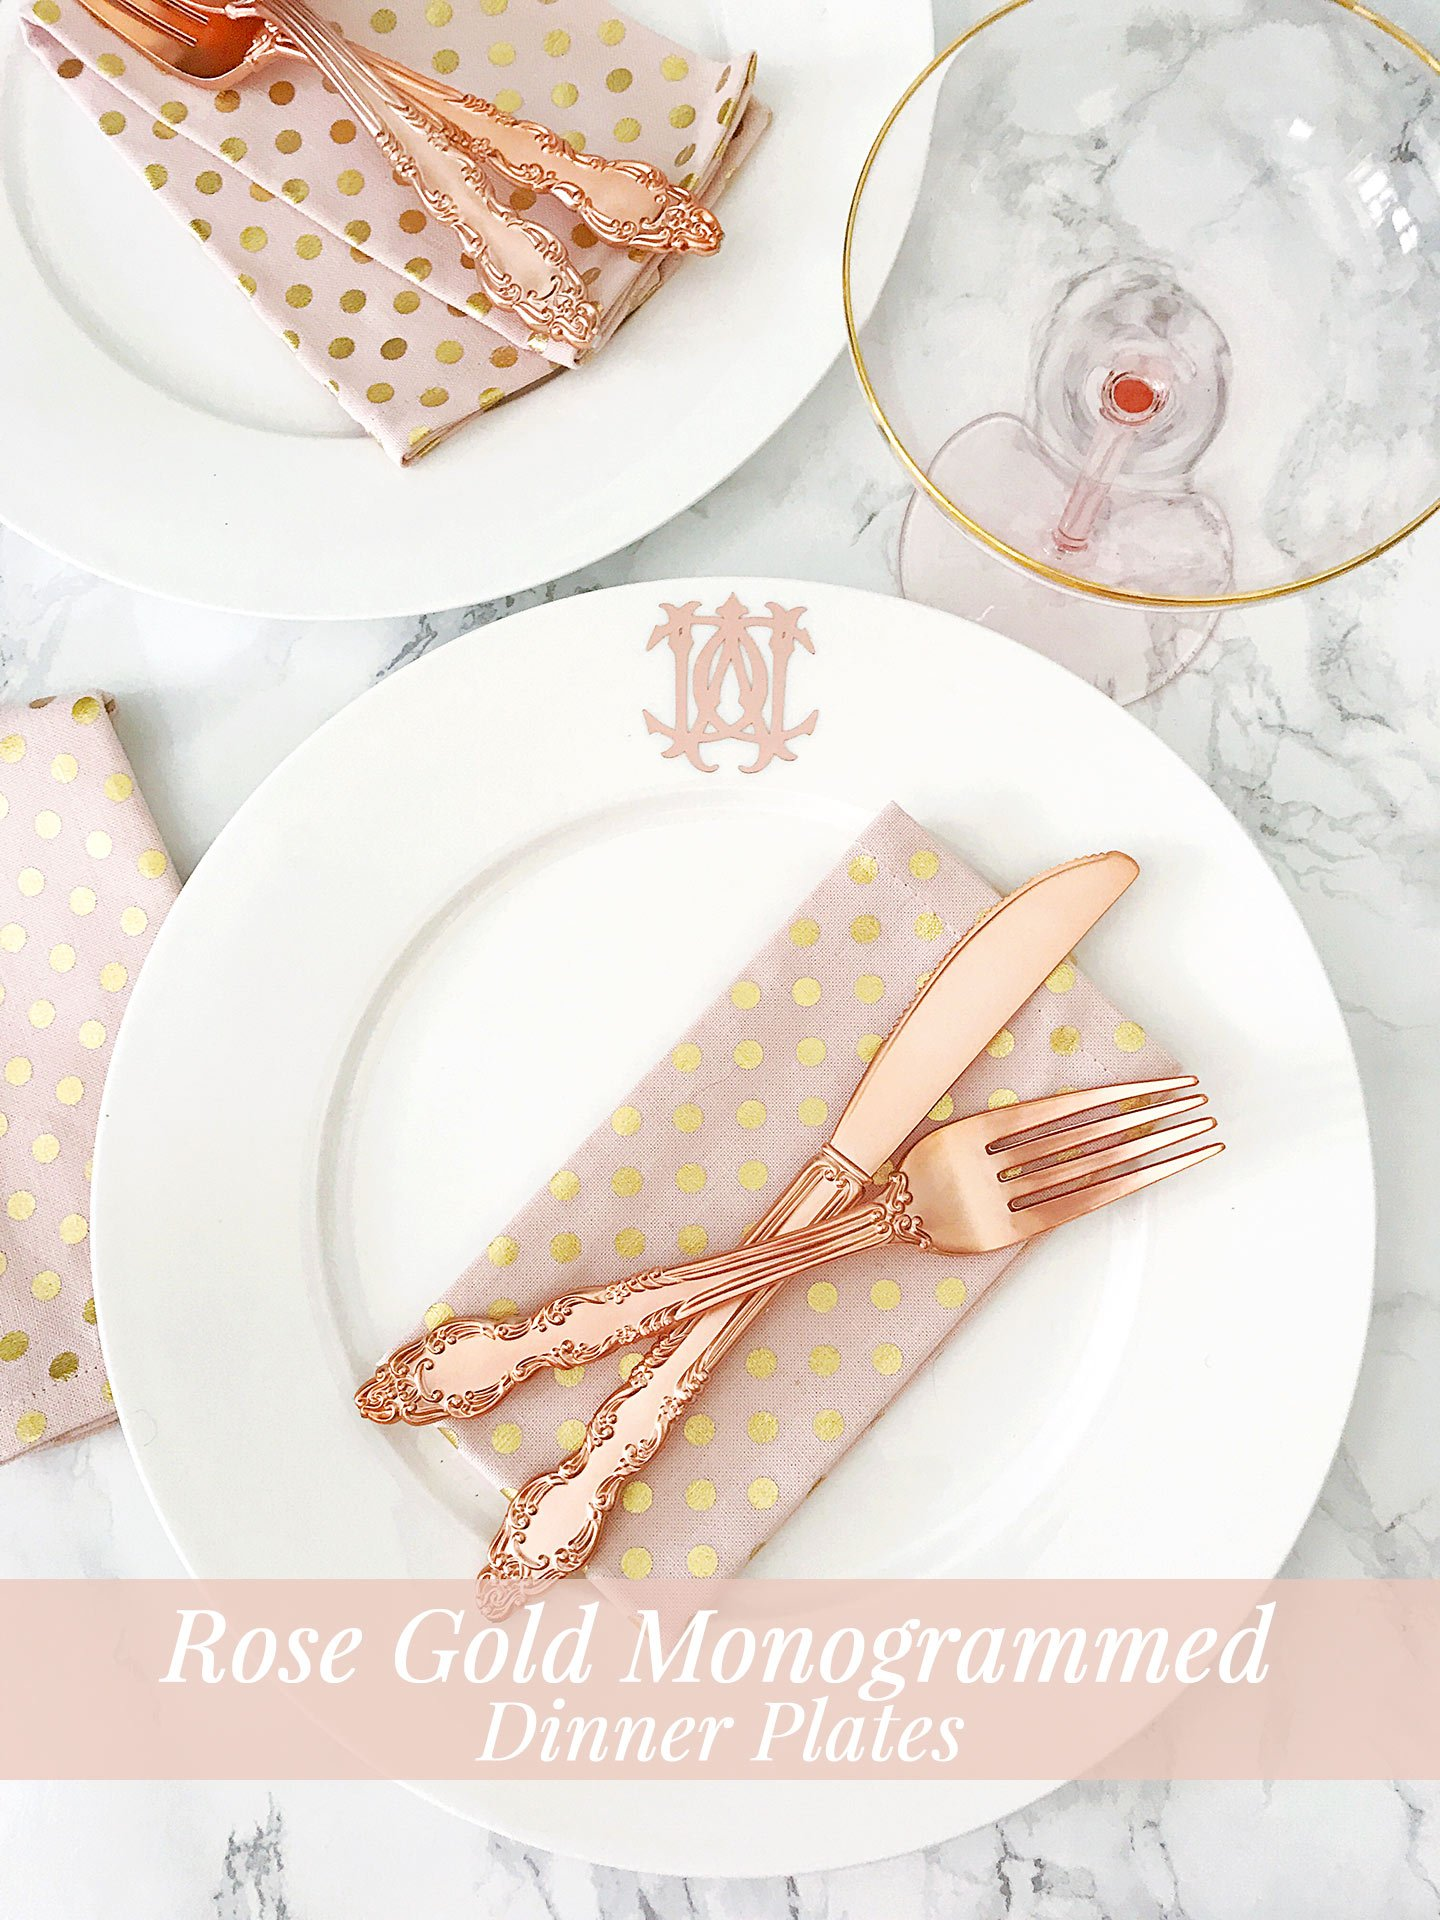 DIY Rose Gold Monogrammed Dinner Plates  sc 1 st  Pizzazzerie & DIY Rose Gold Monogrammed Dinner Plates | Pizzazzerie